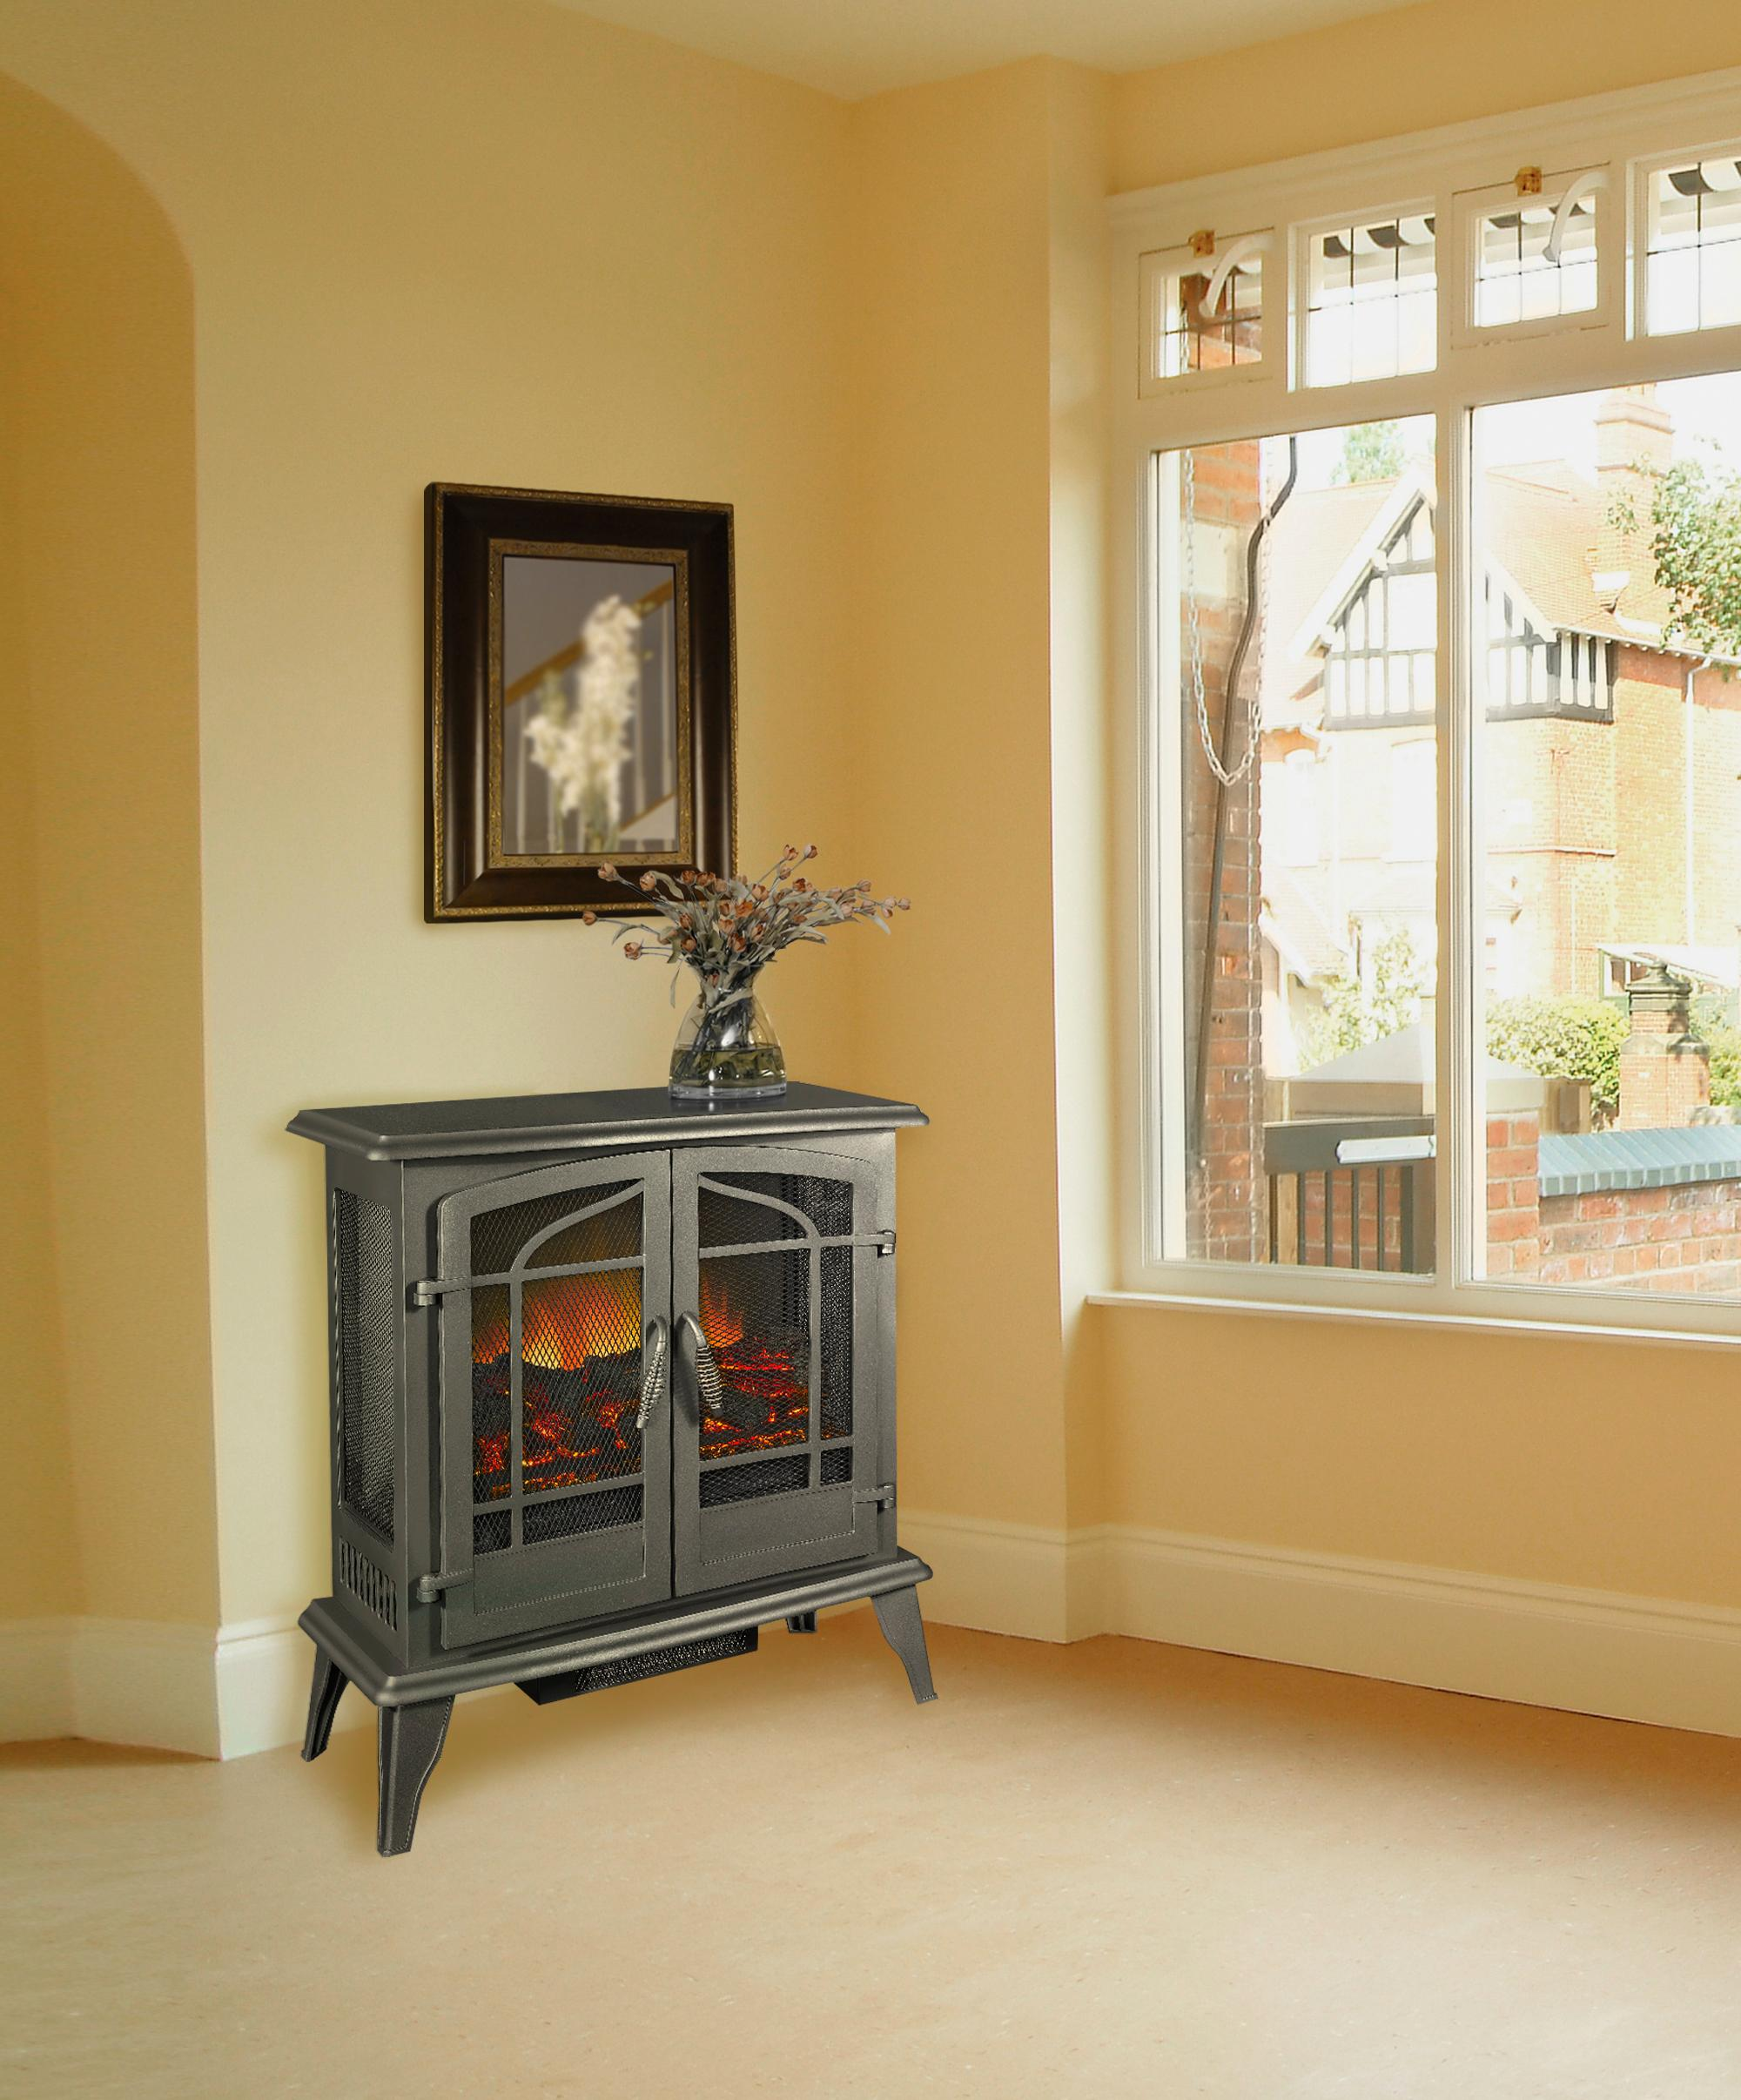 amazon com pleasant hearth legacy panoramic electric stove